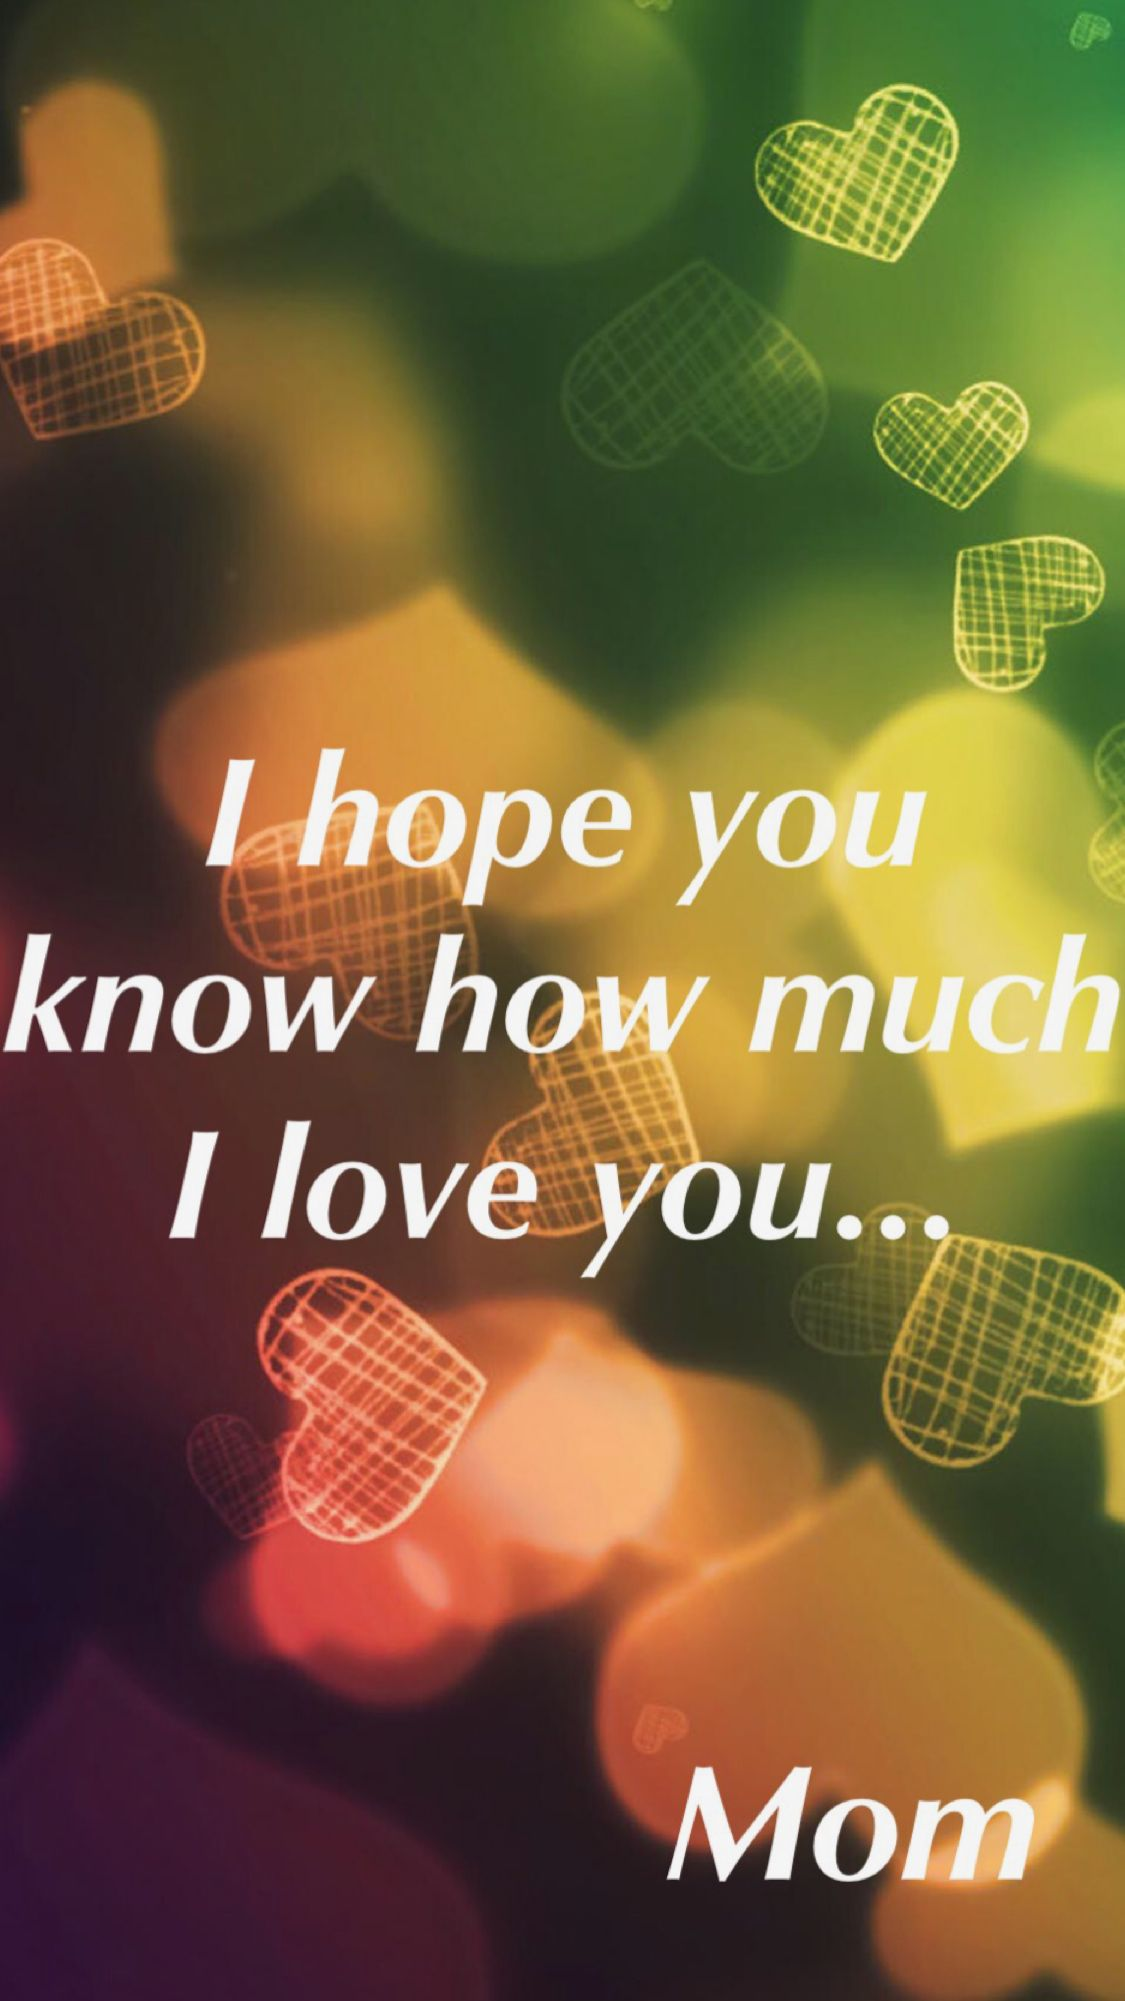 Missing You Love You Always Forever My Son Forever Your Mom Klb My Son Quotes Love Children Quotes Love My Son Quotes